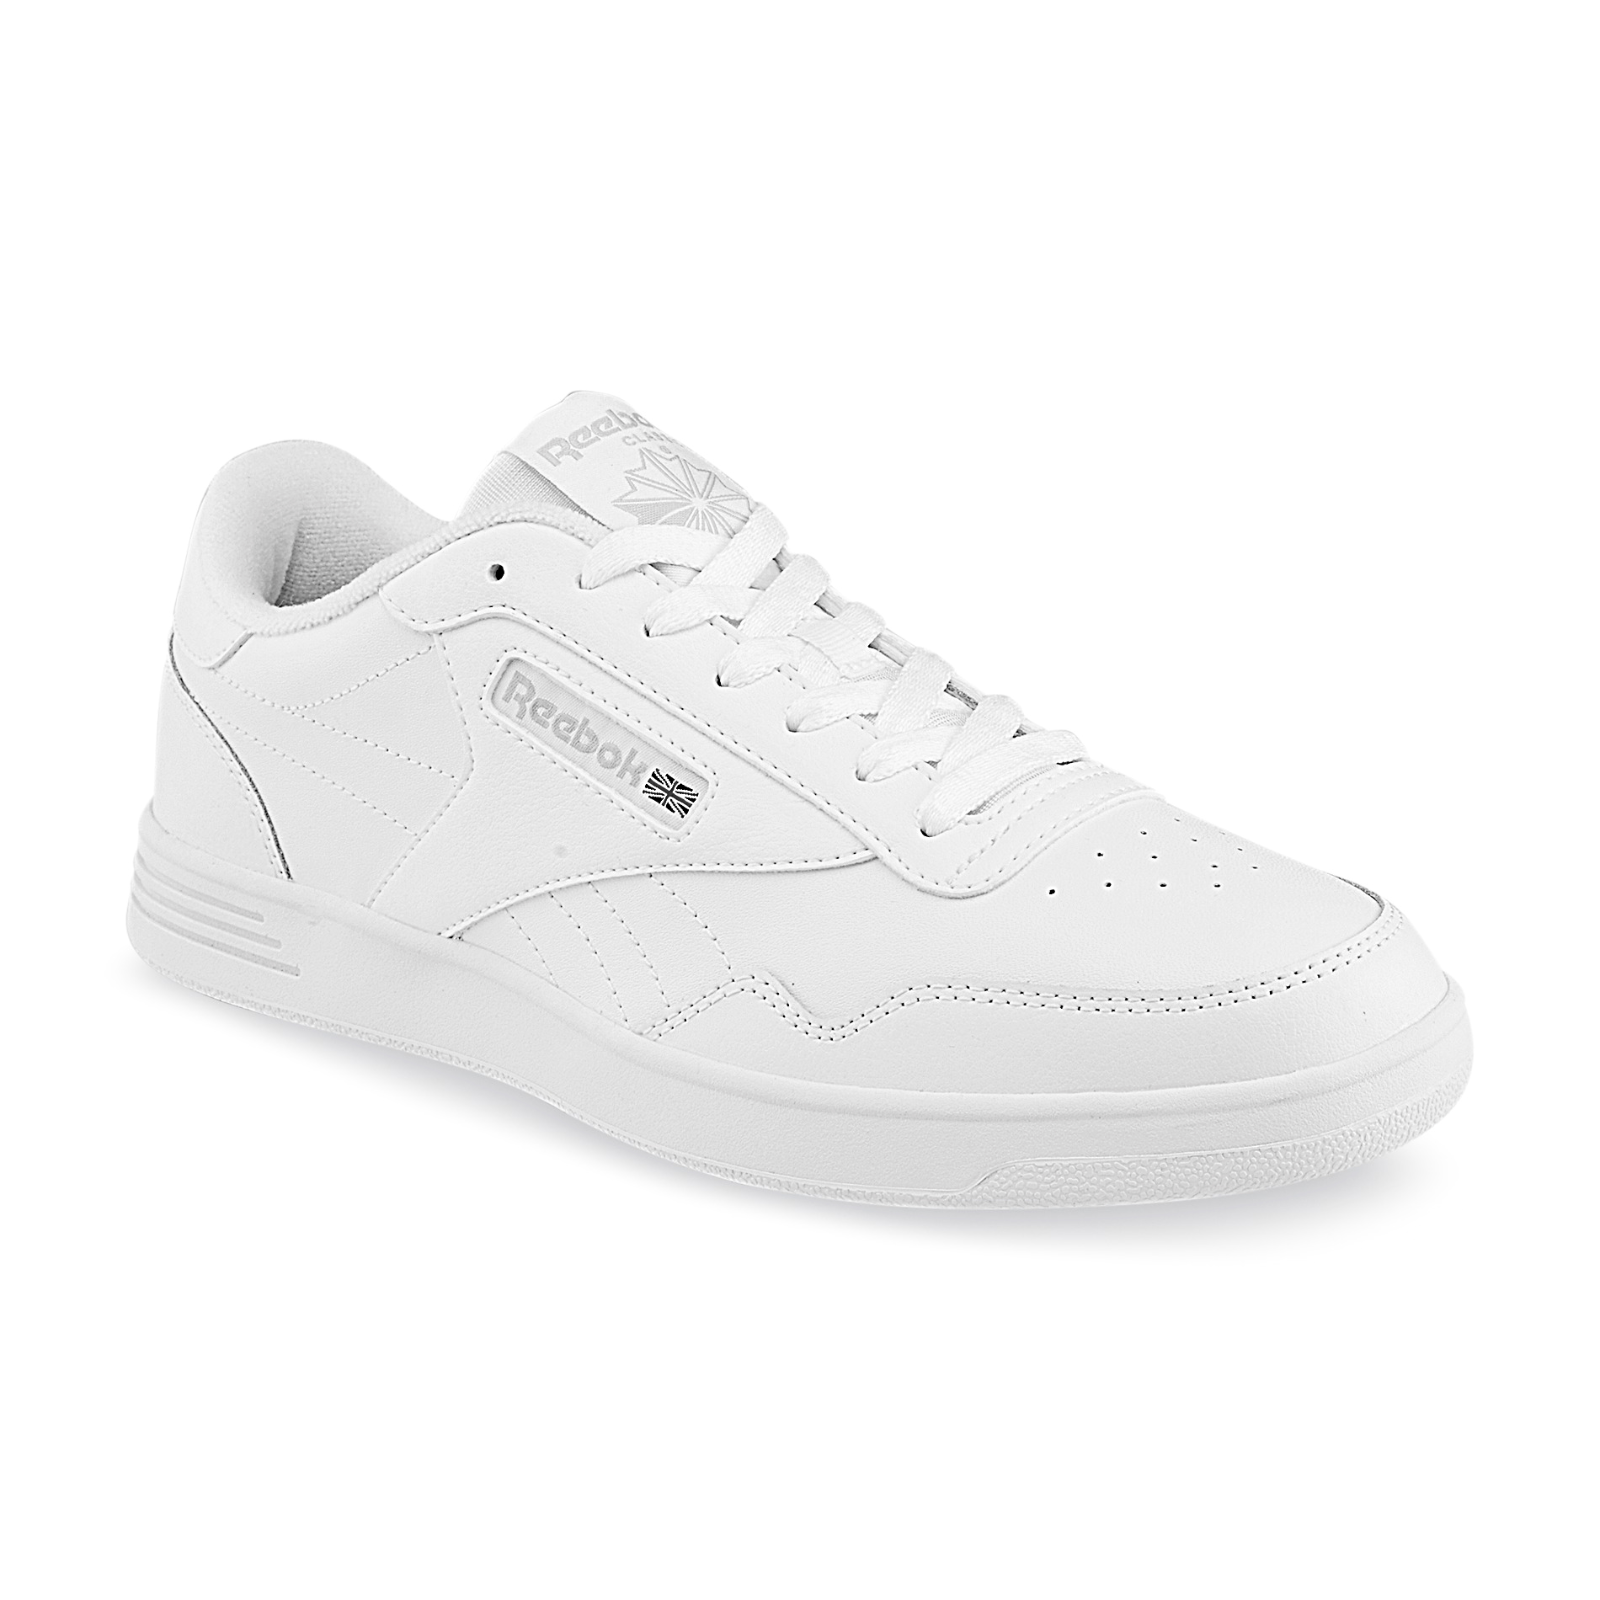 New Reebok hommes Club C Leather Extra Wide Width Athletic Chaussures blanc Leather